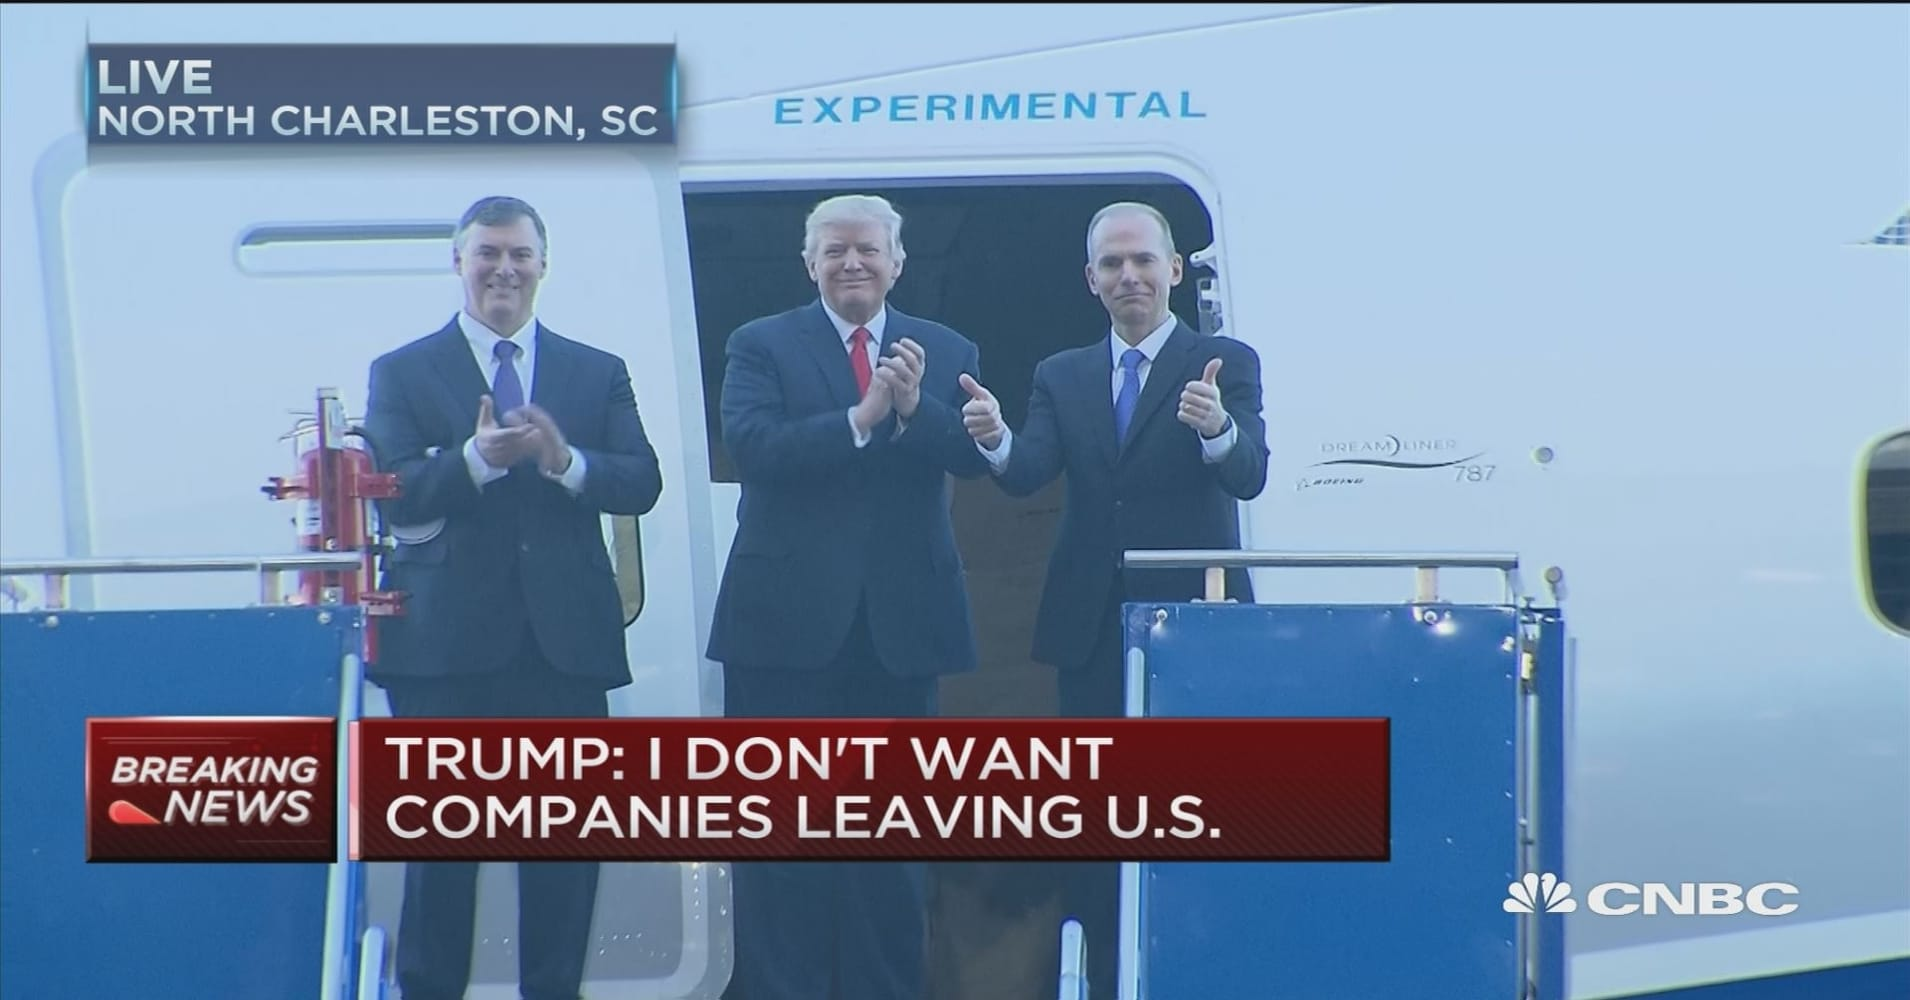 Highlights from trumps trip to boeing plant in charleston malvernweather Images